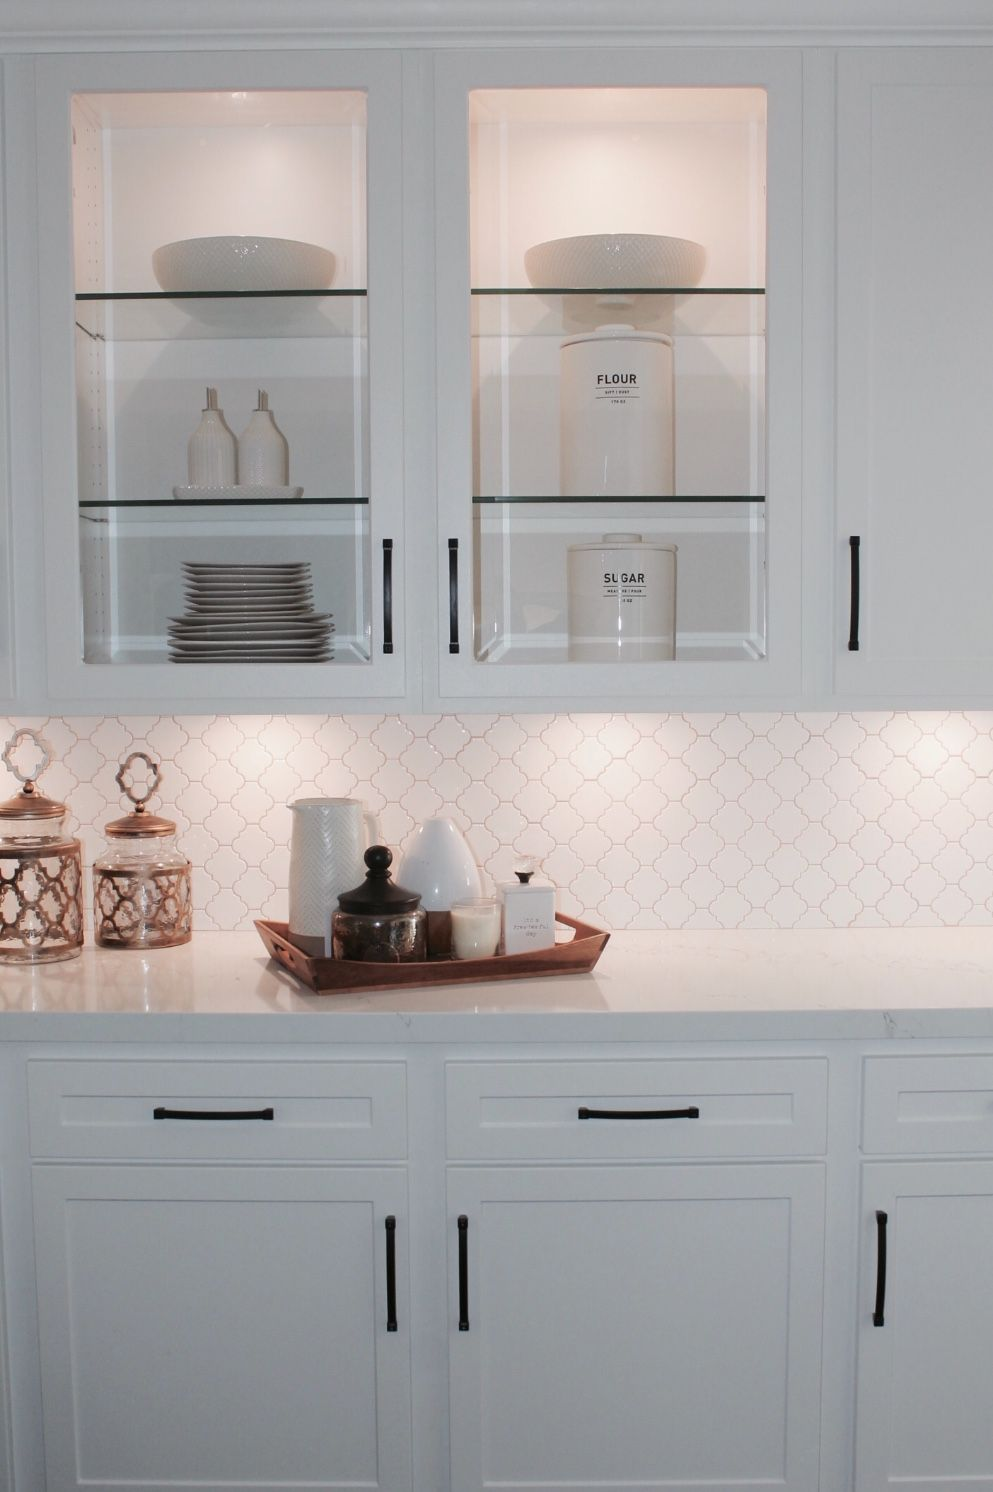 The Added Cabinets In The Anaheim Kitchen Reface Look Incredible Believe It Or Not Your Refaced Cabinets Can Be Com Cabinet Cabinet Remodel Kitchen Cabinetry